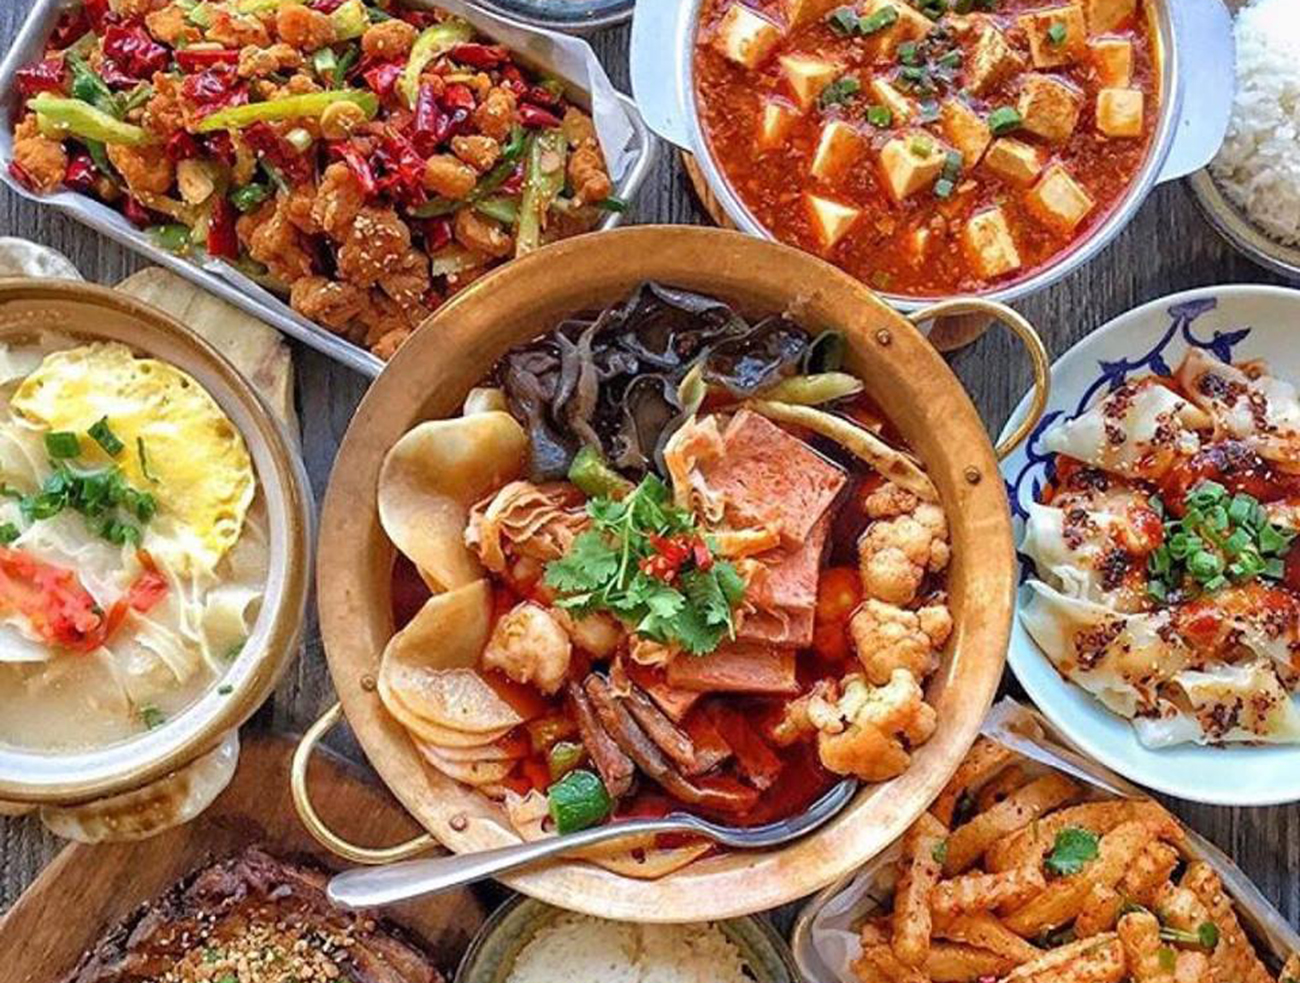 Chengdu Street Food Party - What Should We Do™